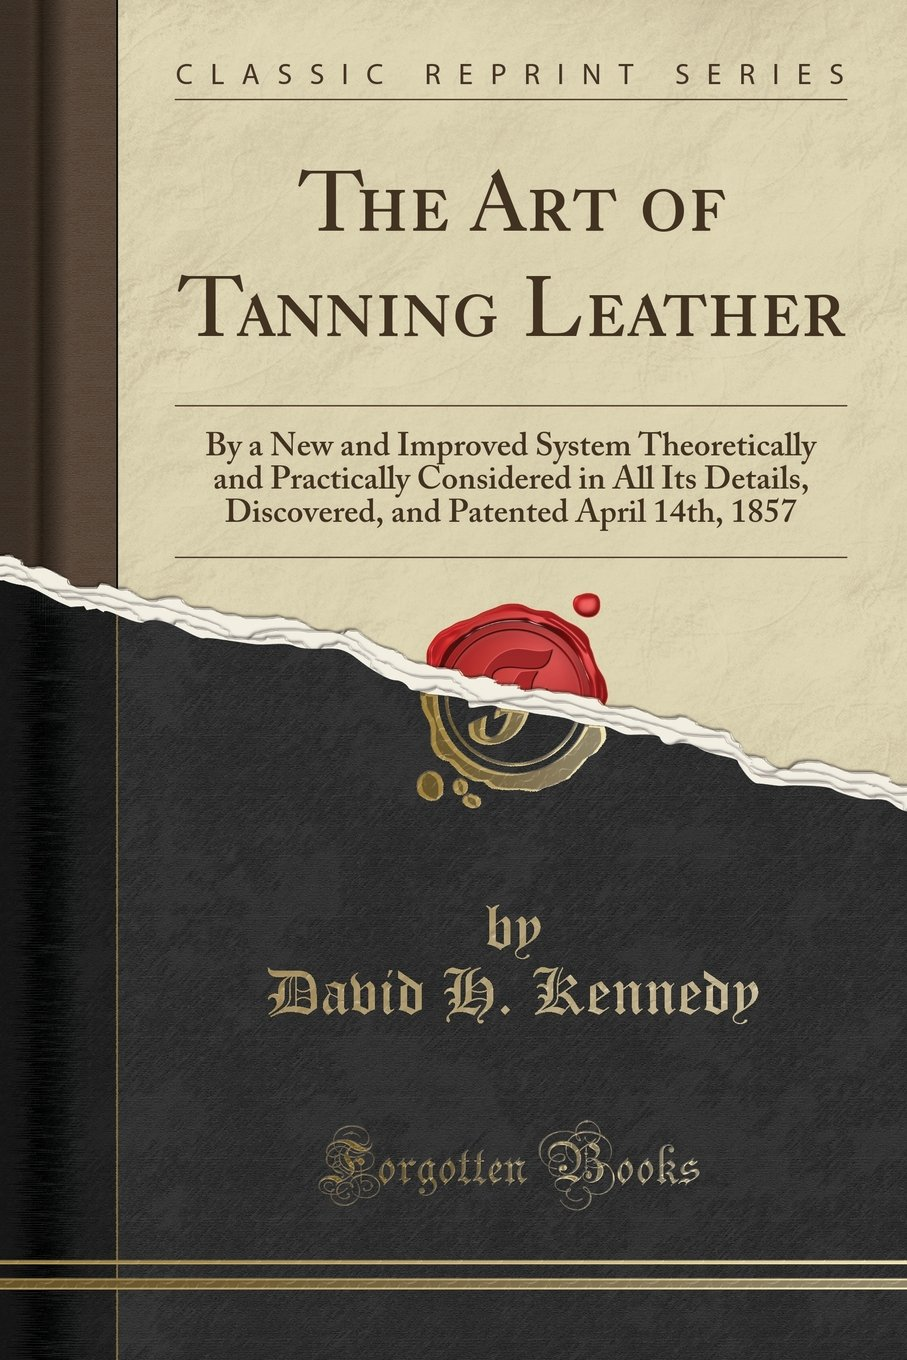 Read Online The Art of Tanning Leather: By a New and Improved System Theoretically and Practically Considered in All Its Details, Discovered, and Patented April 14th, 1857 (Classic Reprint) pdf epub